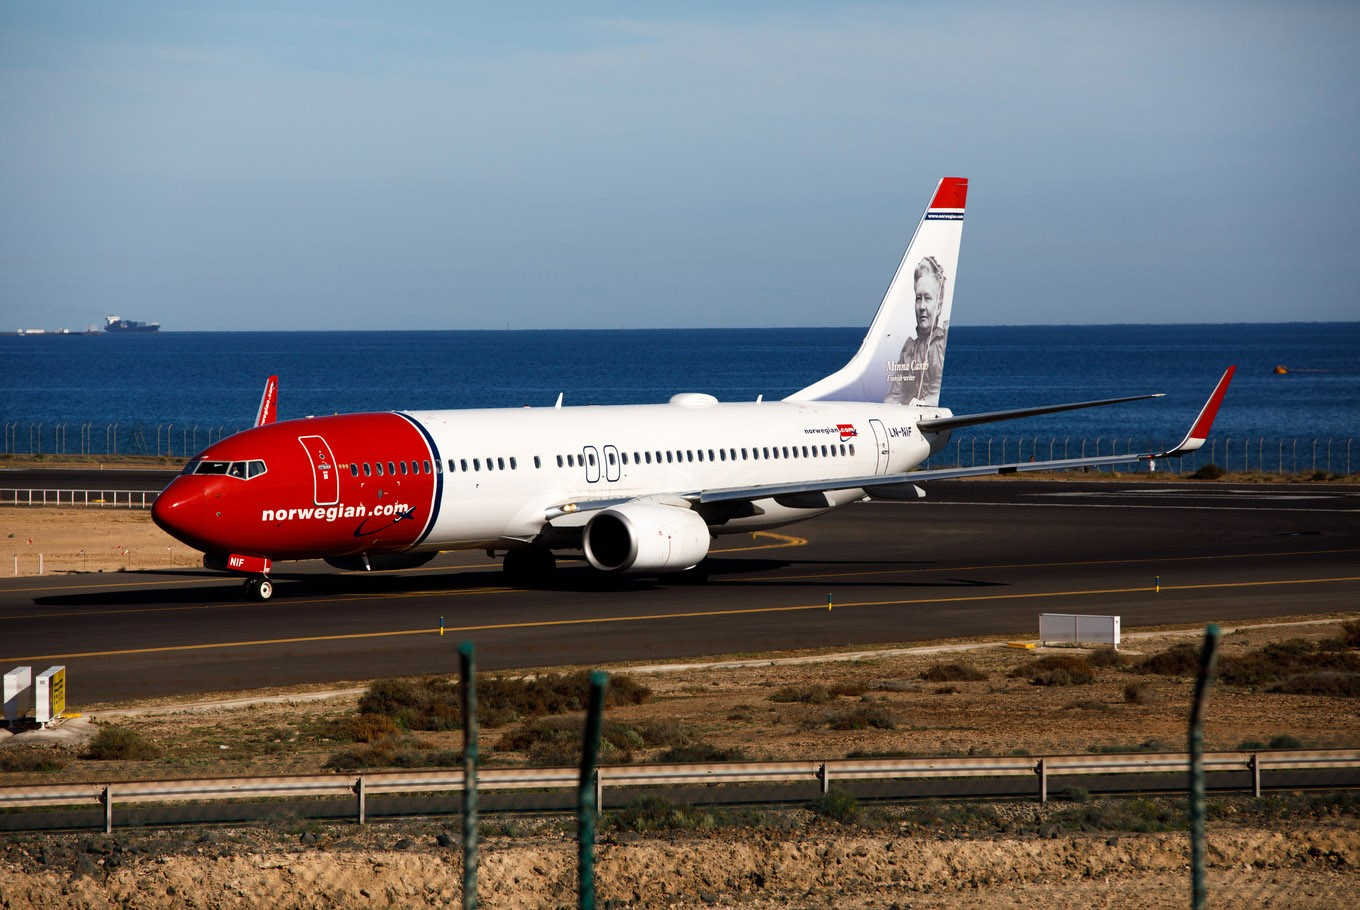 Low-cost Norwegian Air promises bargain flights to Europe